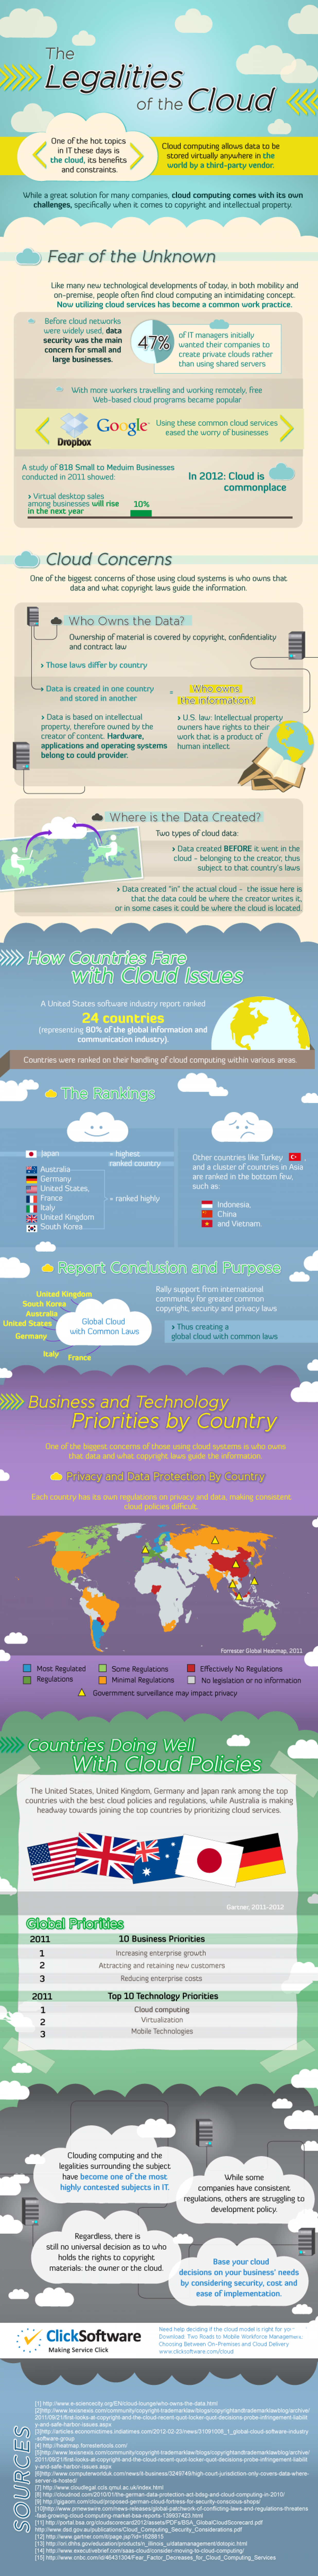 Who Owns the Cloud Copyright? Infographic